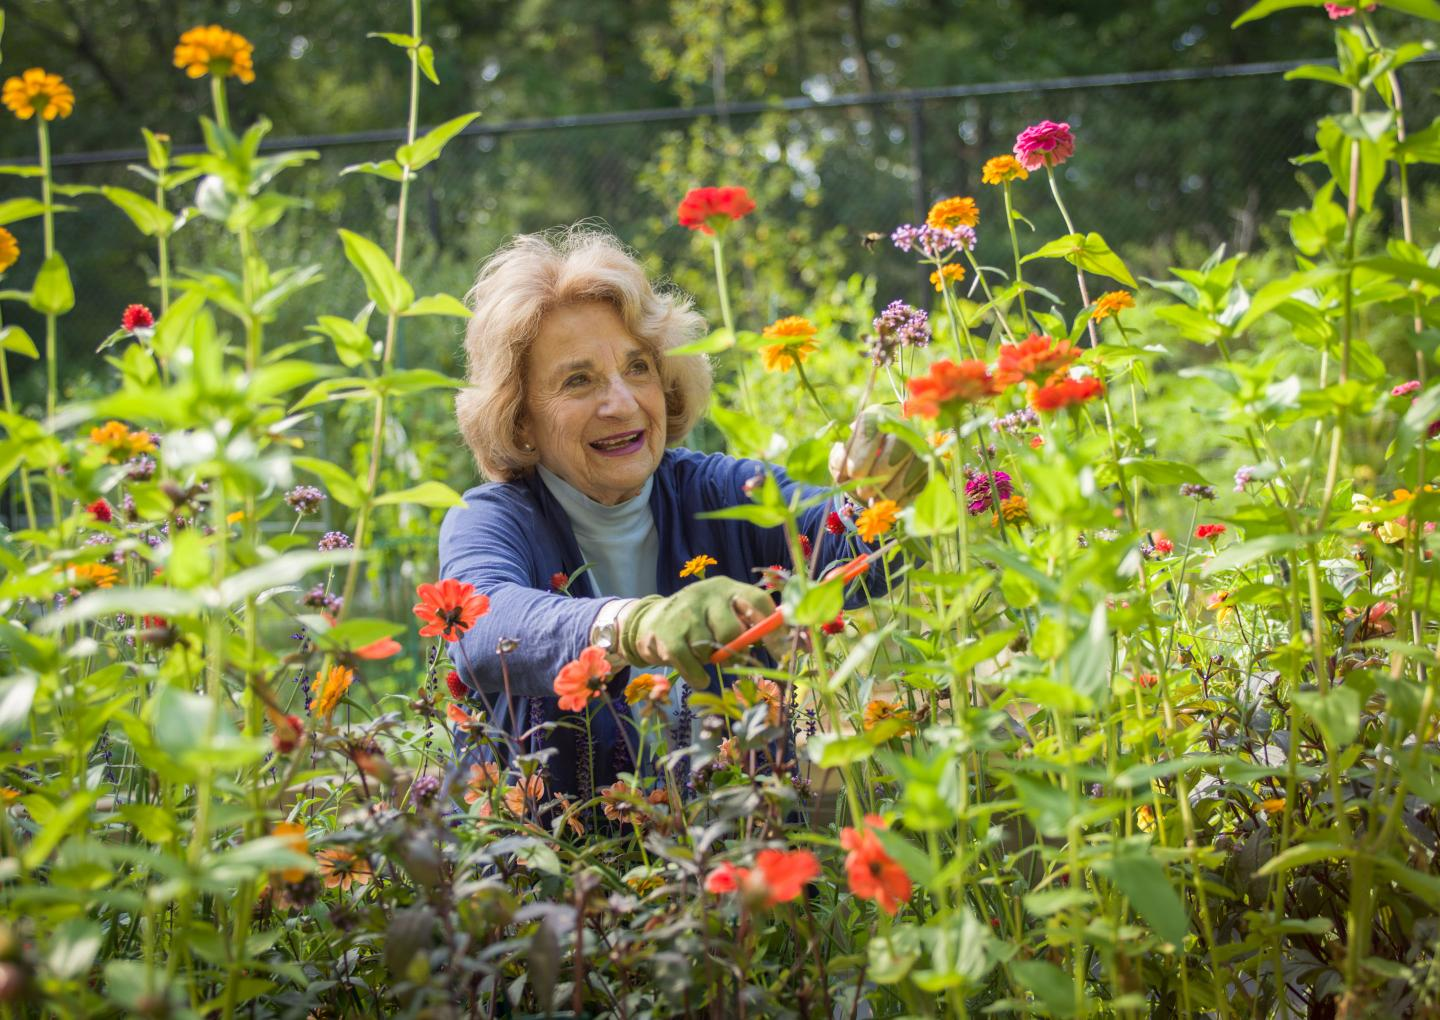 A resident of Orchard Cove cuts wildflowers from her garden.